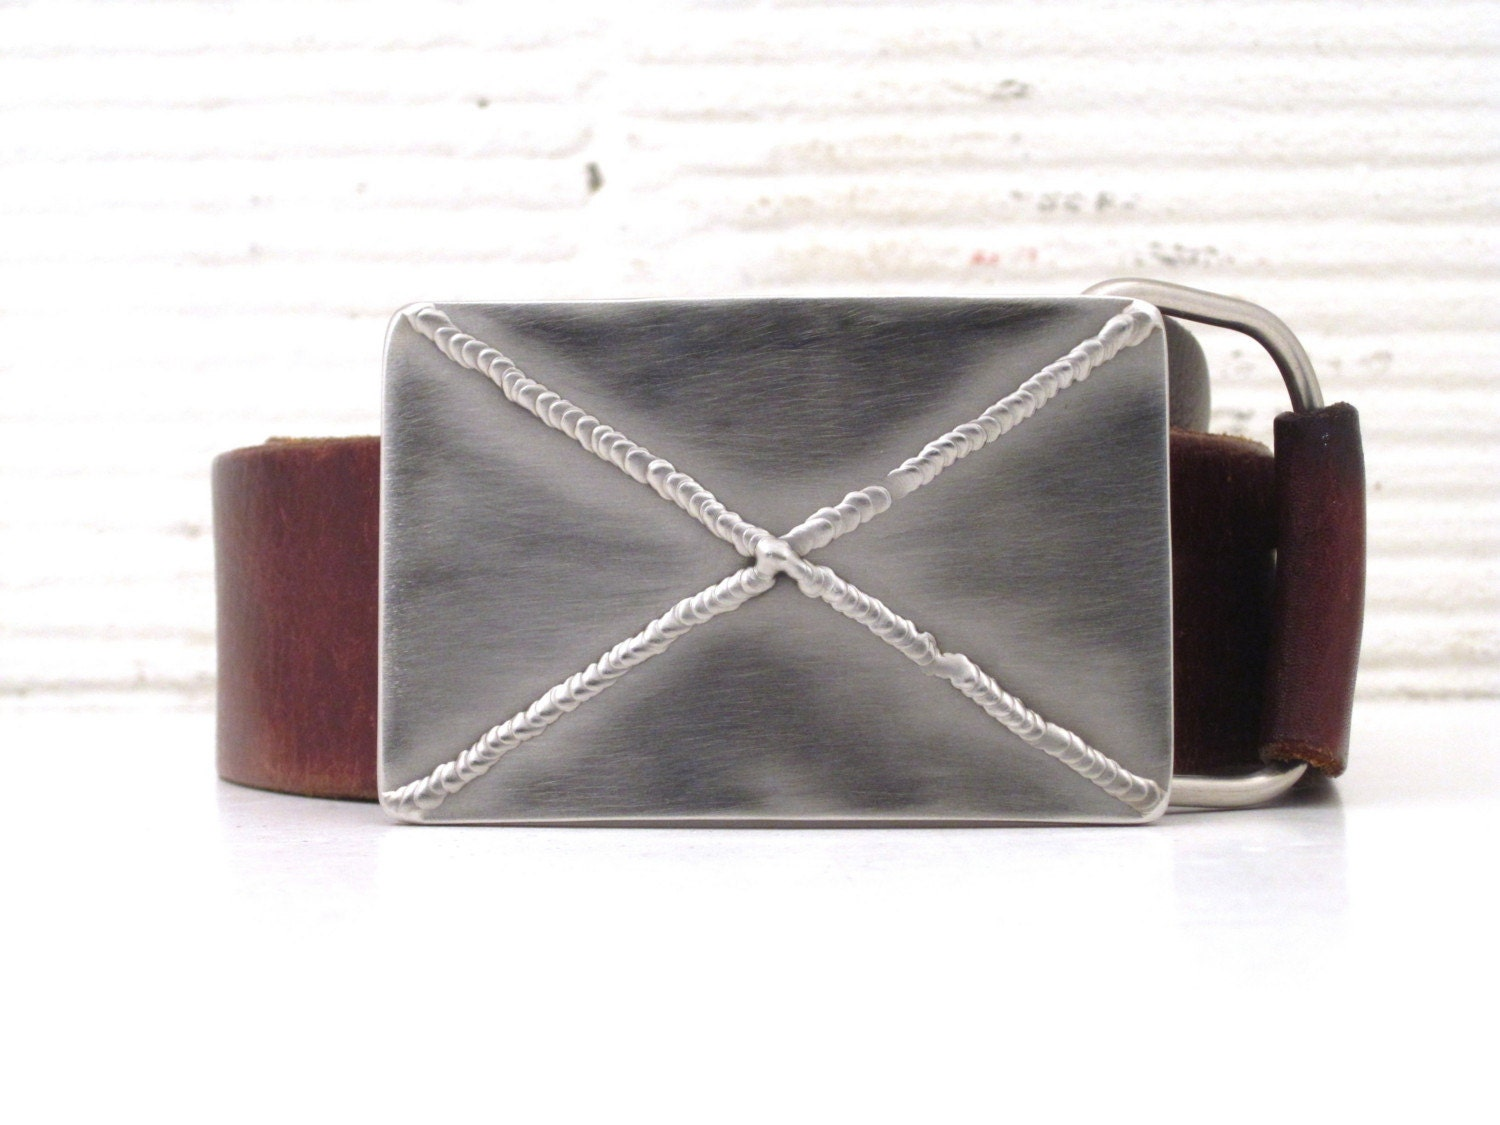 X marks the spot tig welded stainless belt buckle